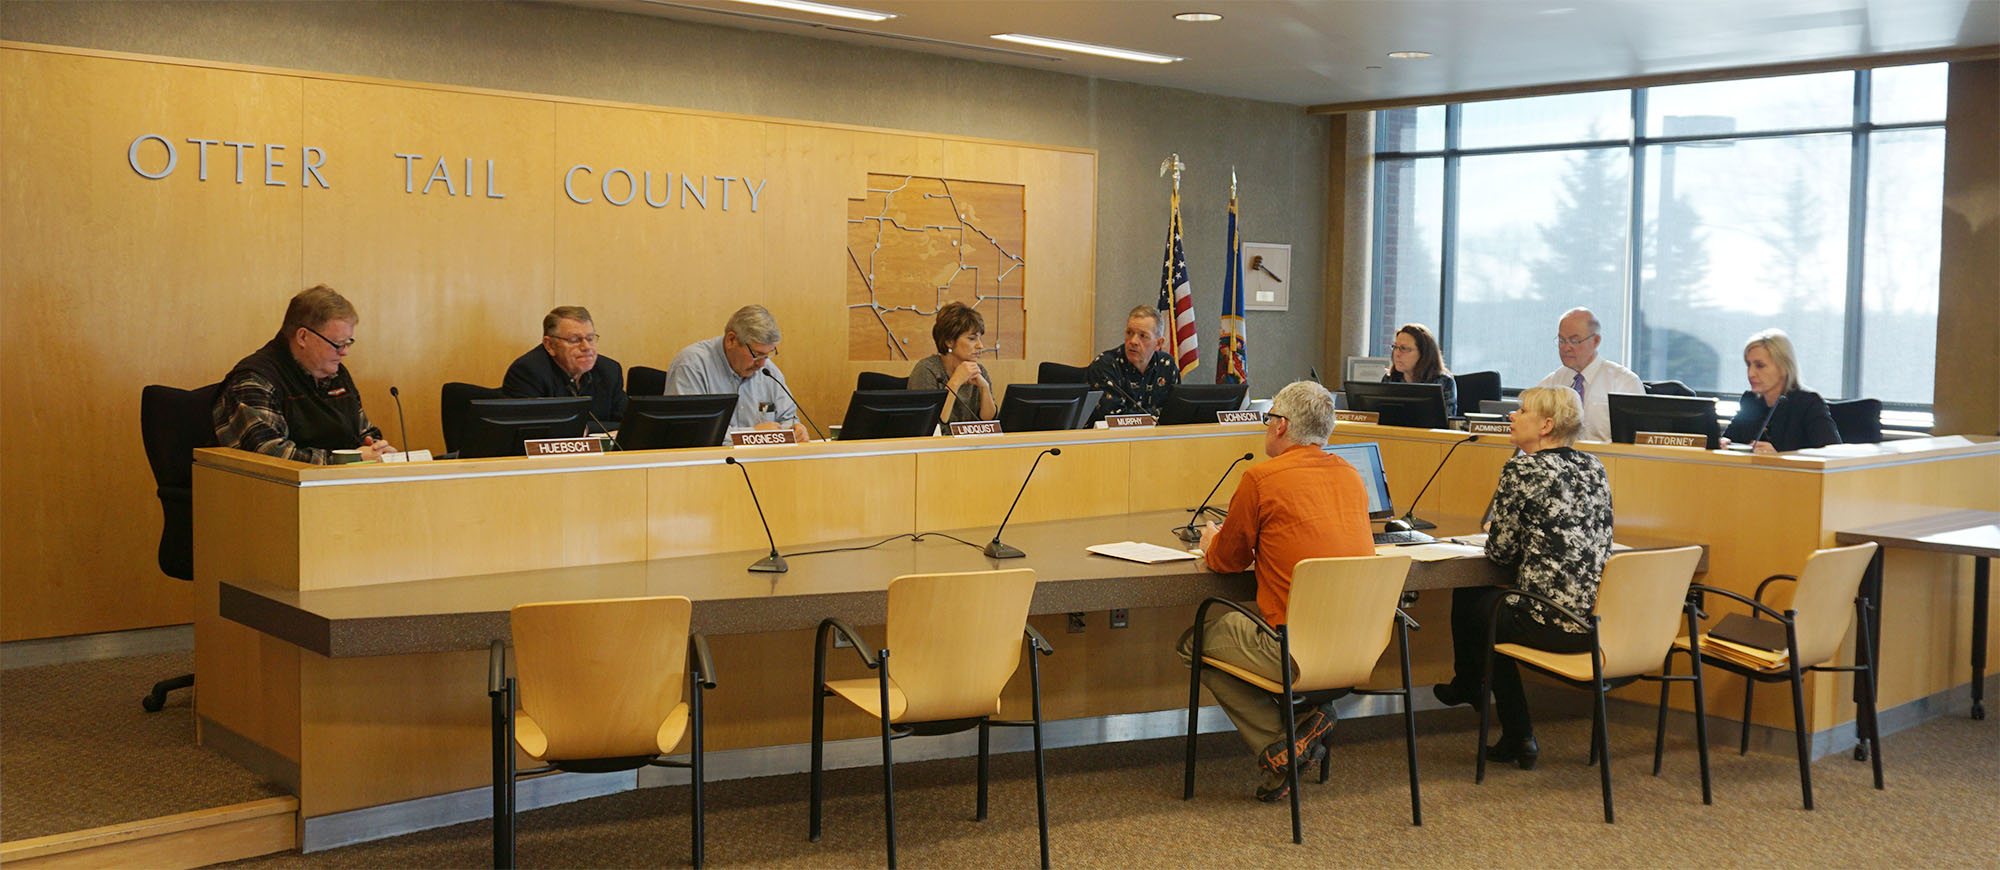 2019 Otter Tail County, MN Board of Commissioners